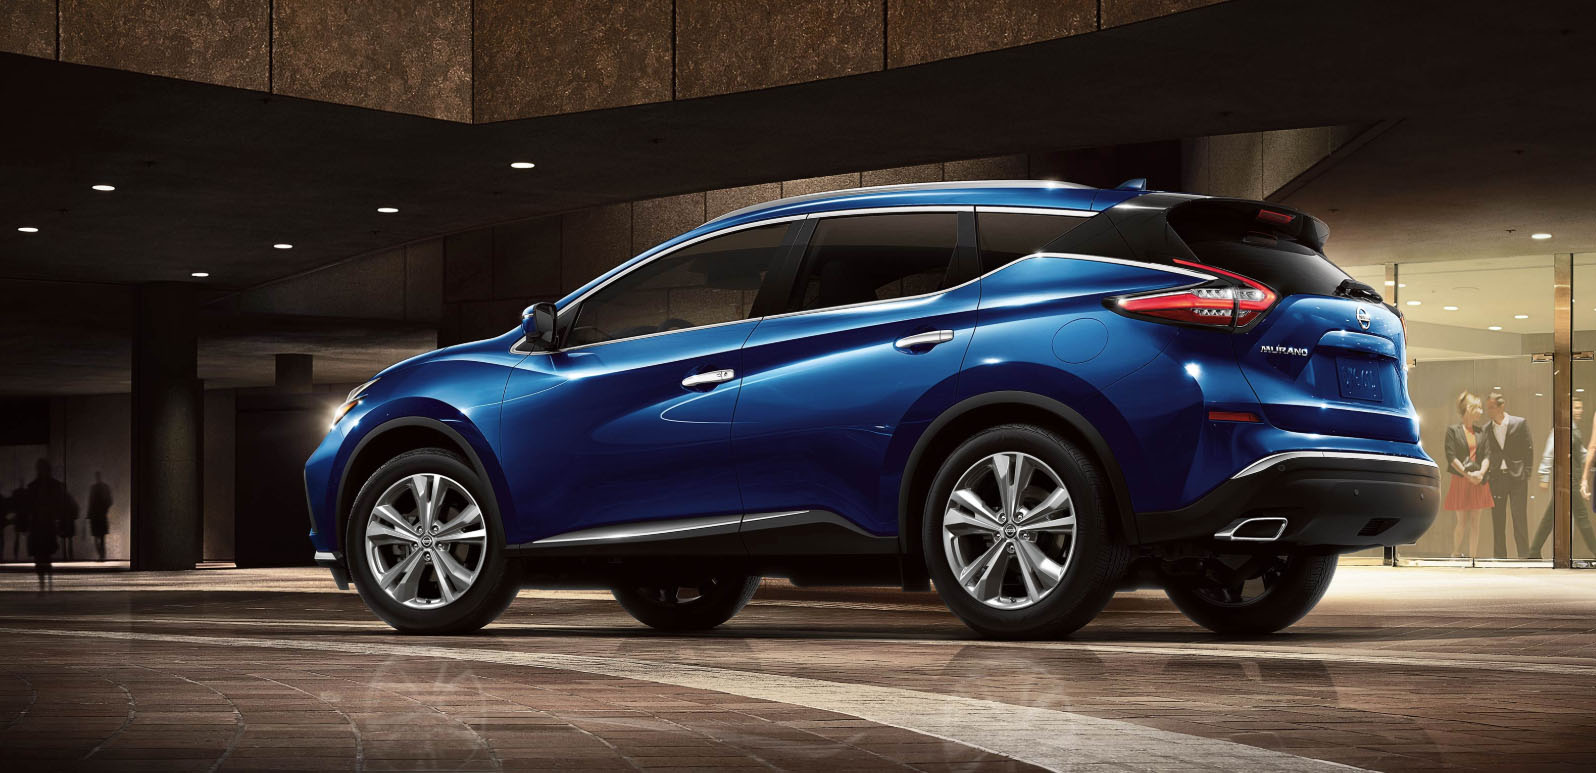 2020 Nissan Murano appearance